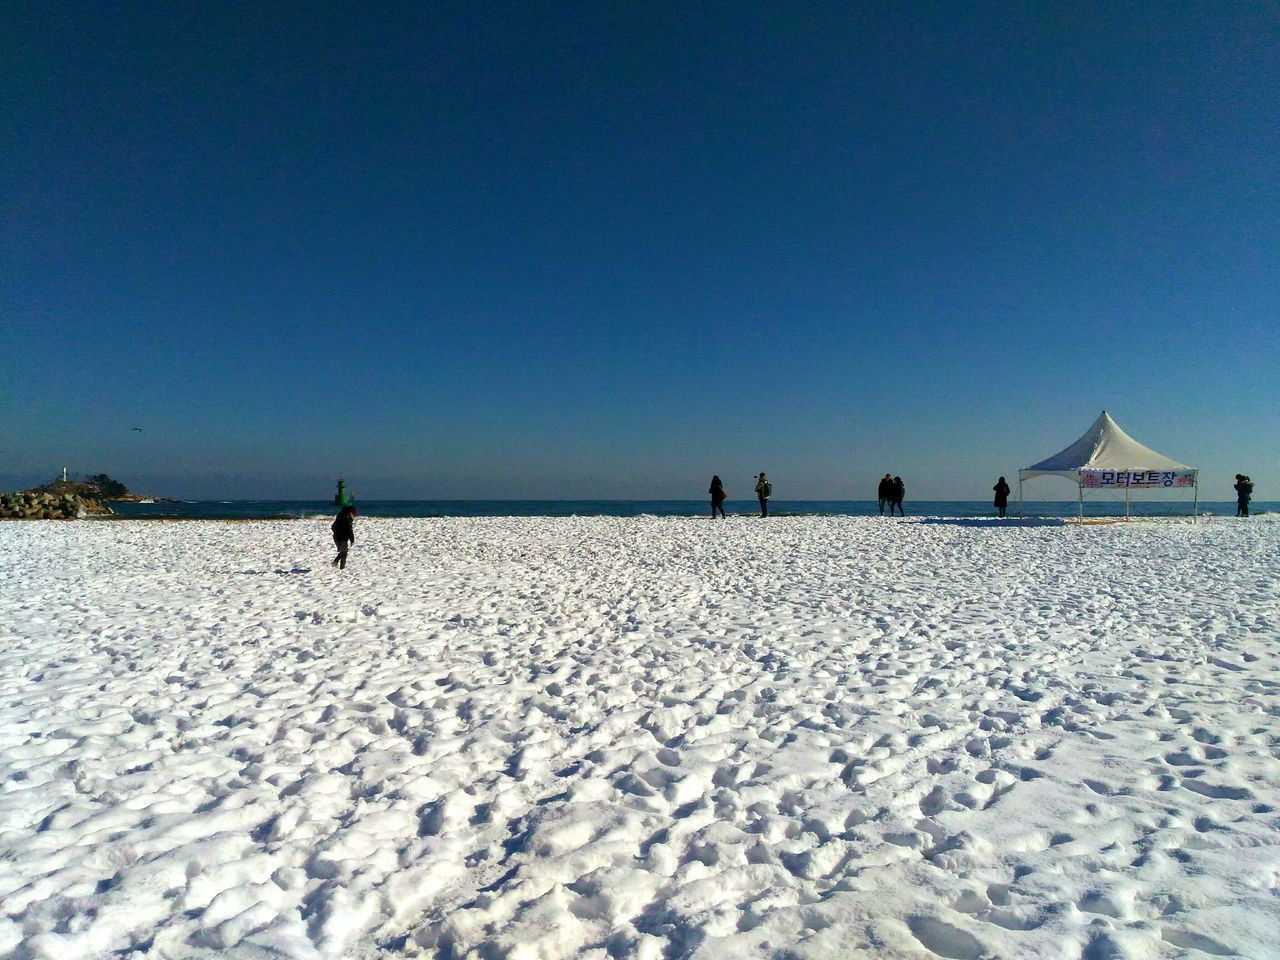 Snow sand Nofilter No Edit/no Filter Sand Beach Sky Cold Temperature Blue Winter Nomadic Wanderlust Sky And Sea Sightseeing Beautyofnature Wonderful World Travel Seascape Landscape Land Sokcho Beach South Korea Gangwon-do